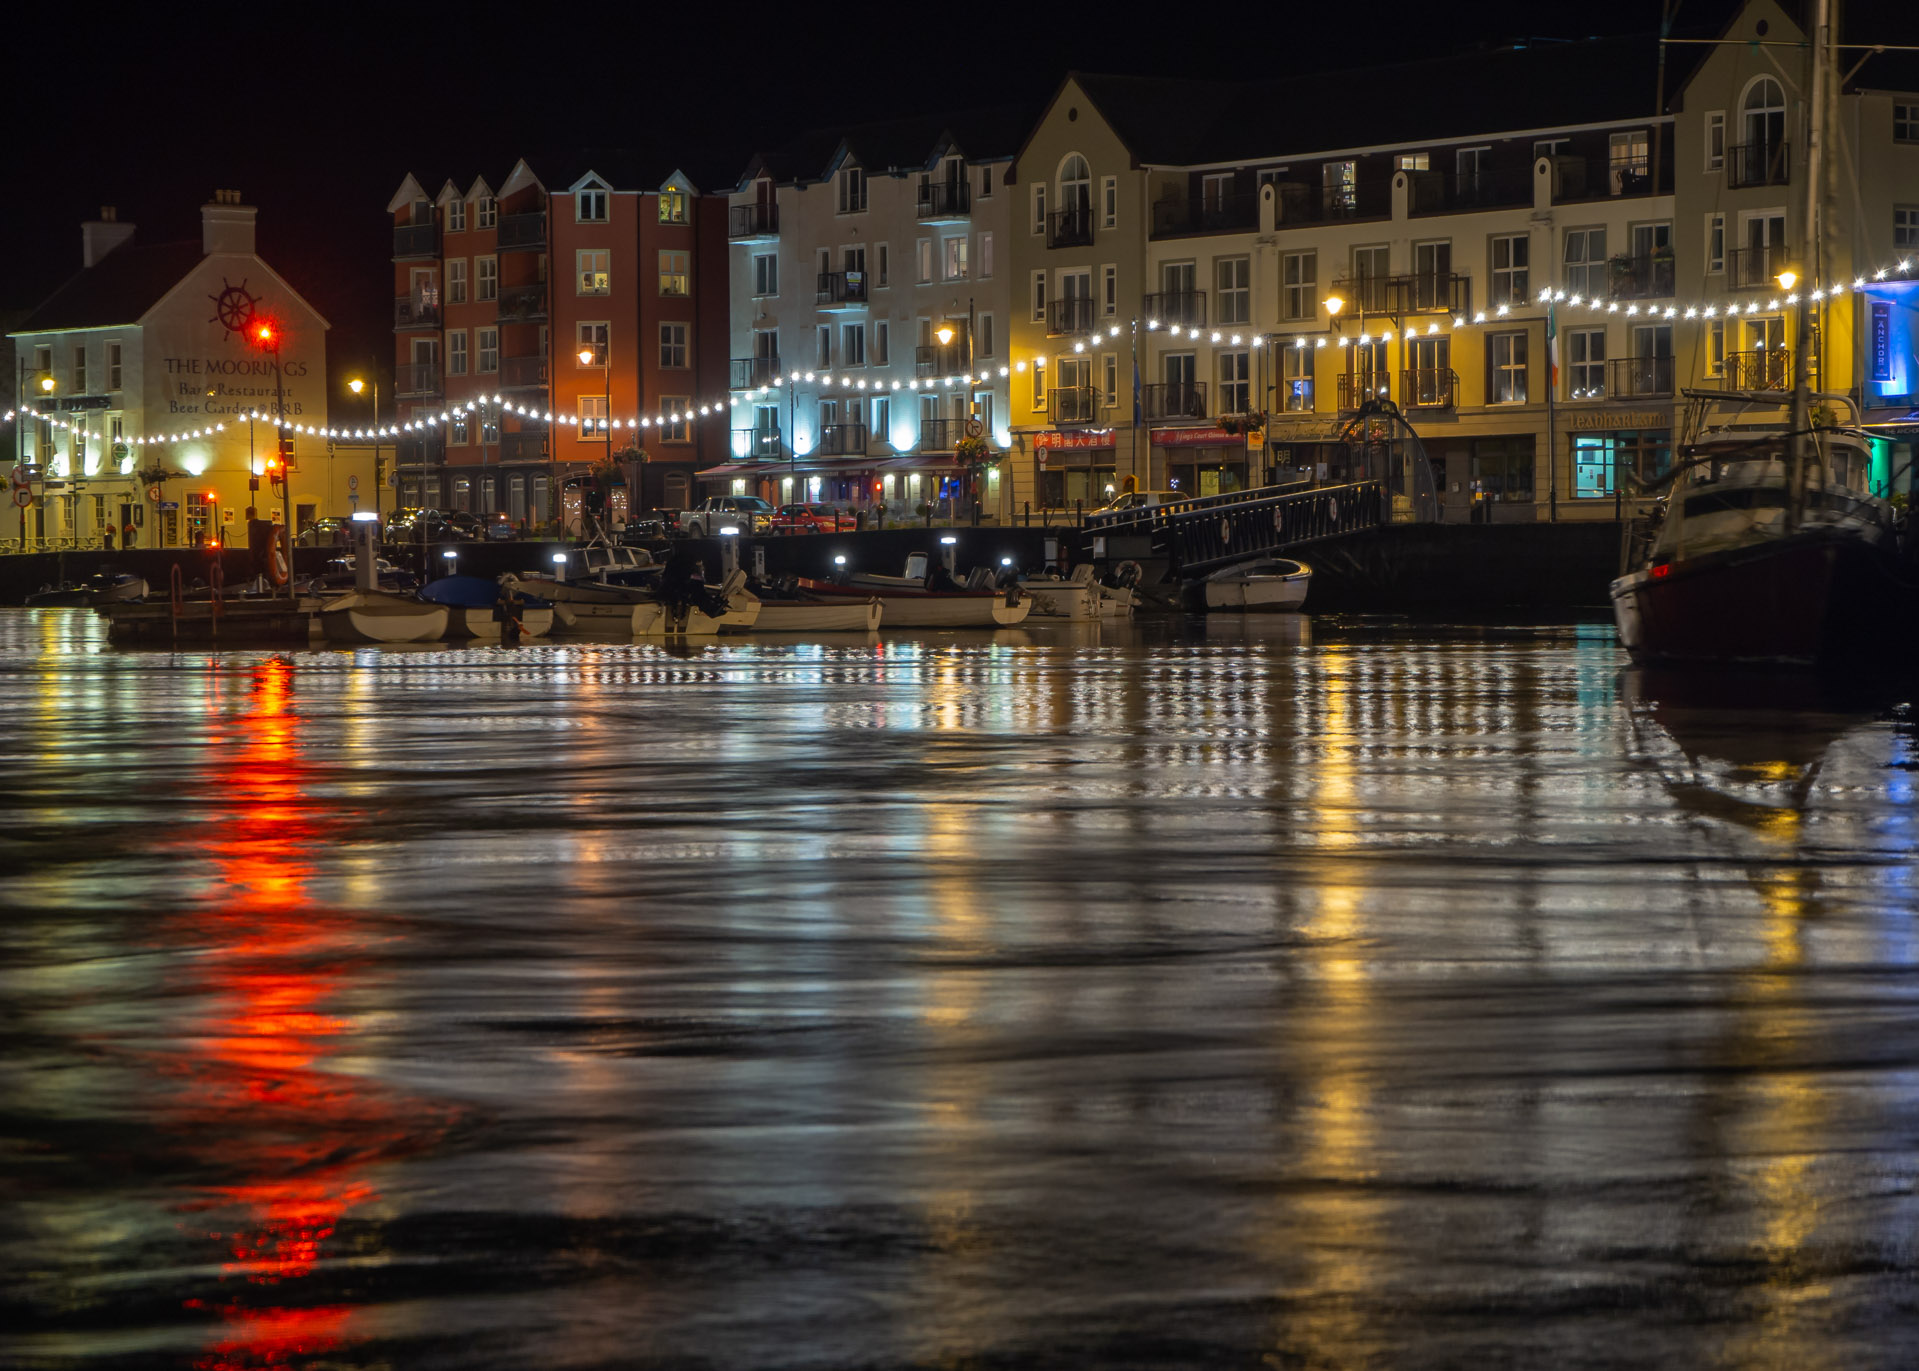 Dungarvan Harbour Waterford at night